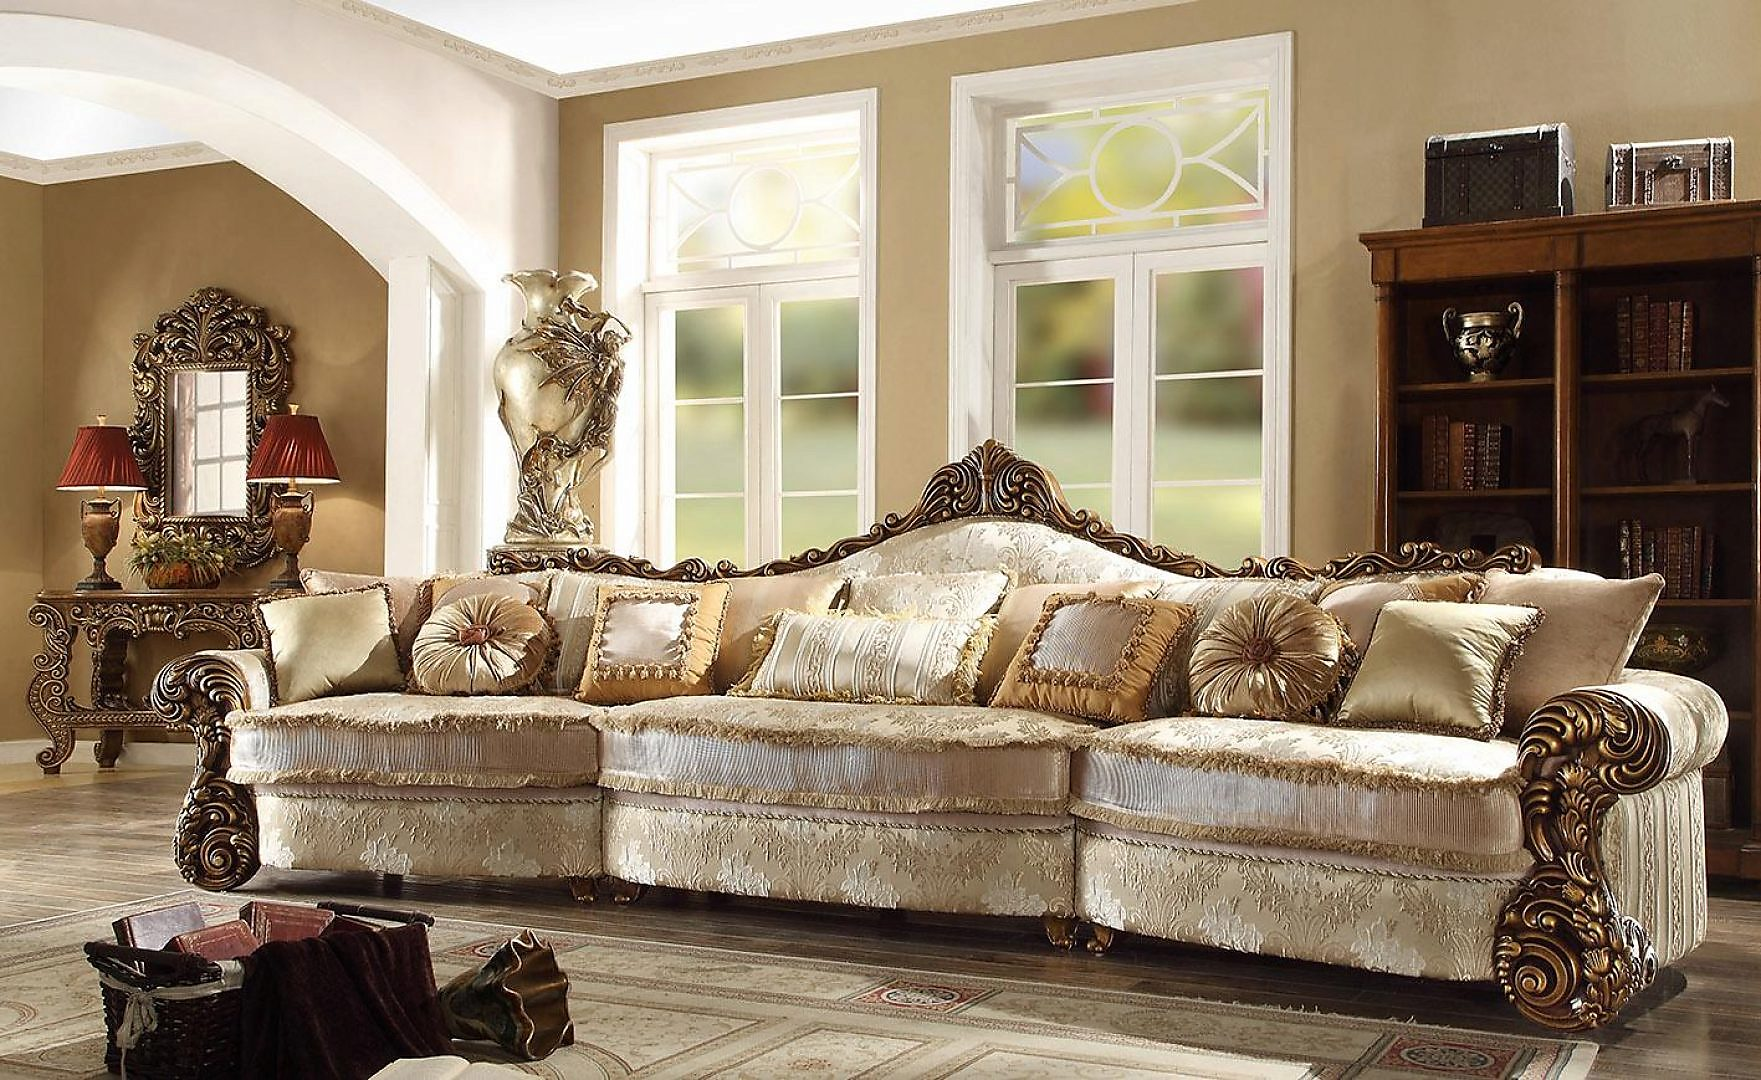 Traditional HD-1608 Sectional Sofa Set 3Pcs by Homey Design